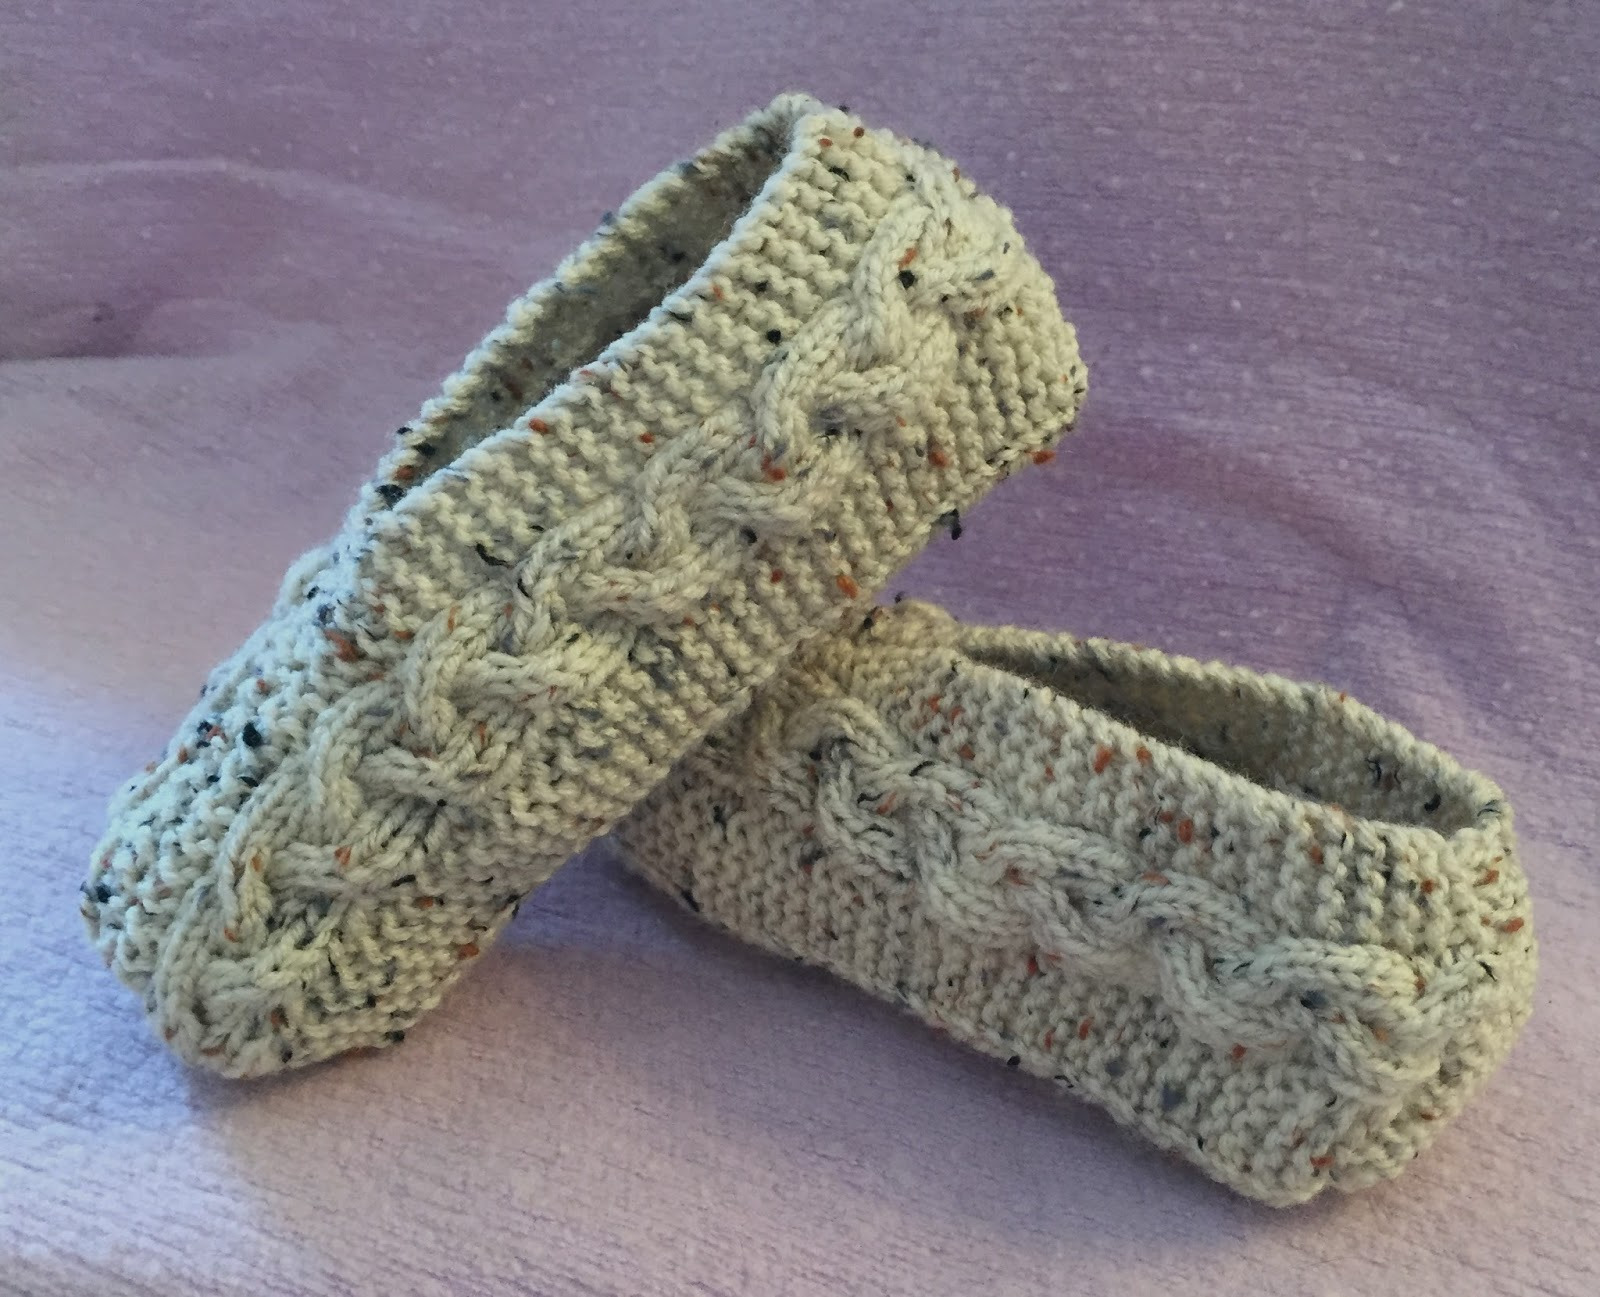 Free Patterns For Knitted Slippers Kweenbee And Me Learn To Knit Slippers With These Patterns